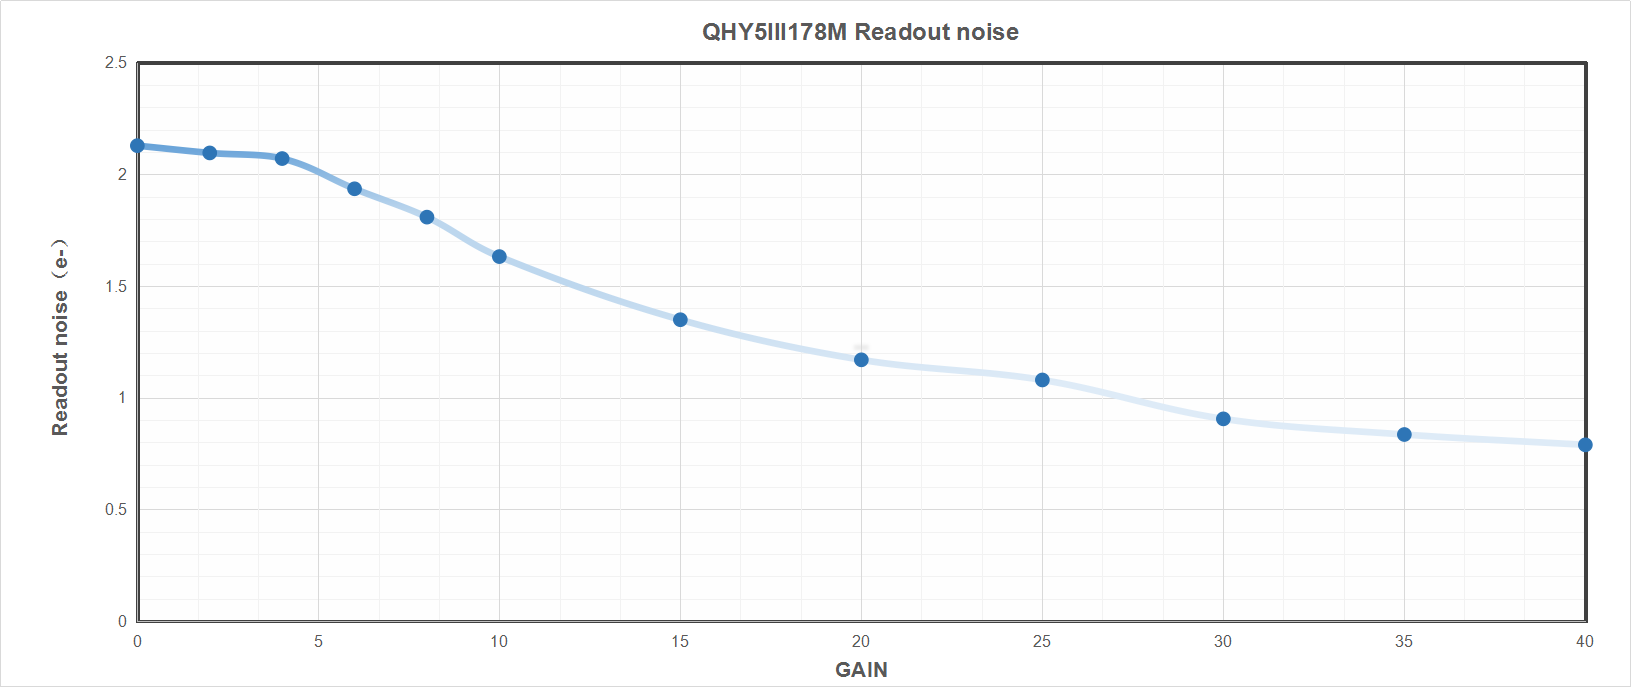 QHY5-III-178M Readout Noise